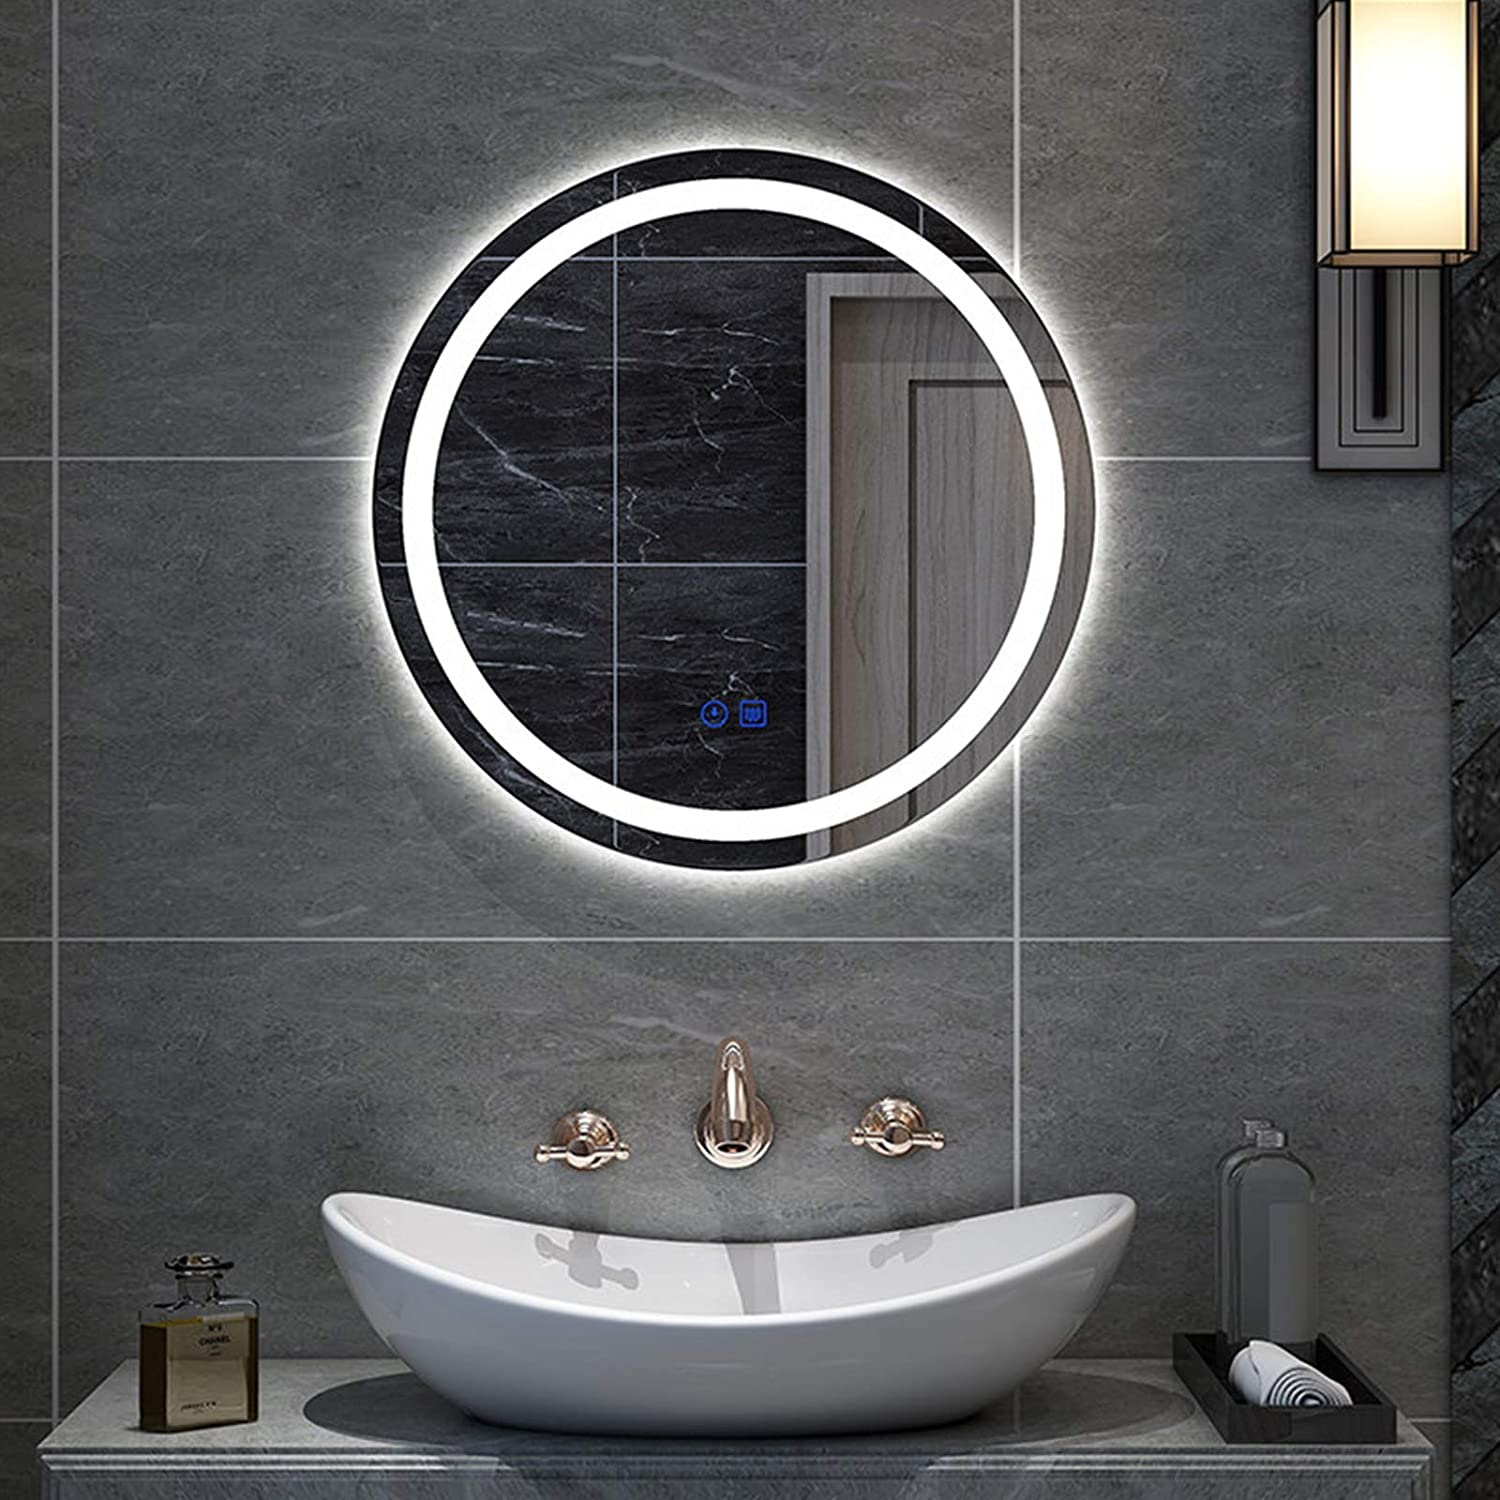 Round LED Import Lighted Bathroom Mirror Vanity Mounted Ranking TOP8 w Wall